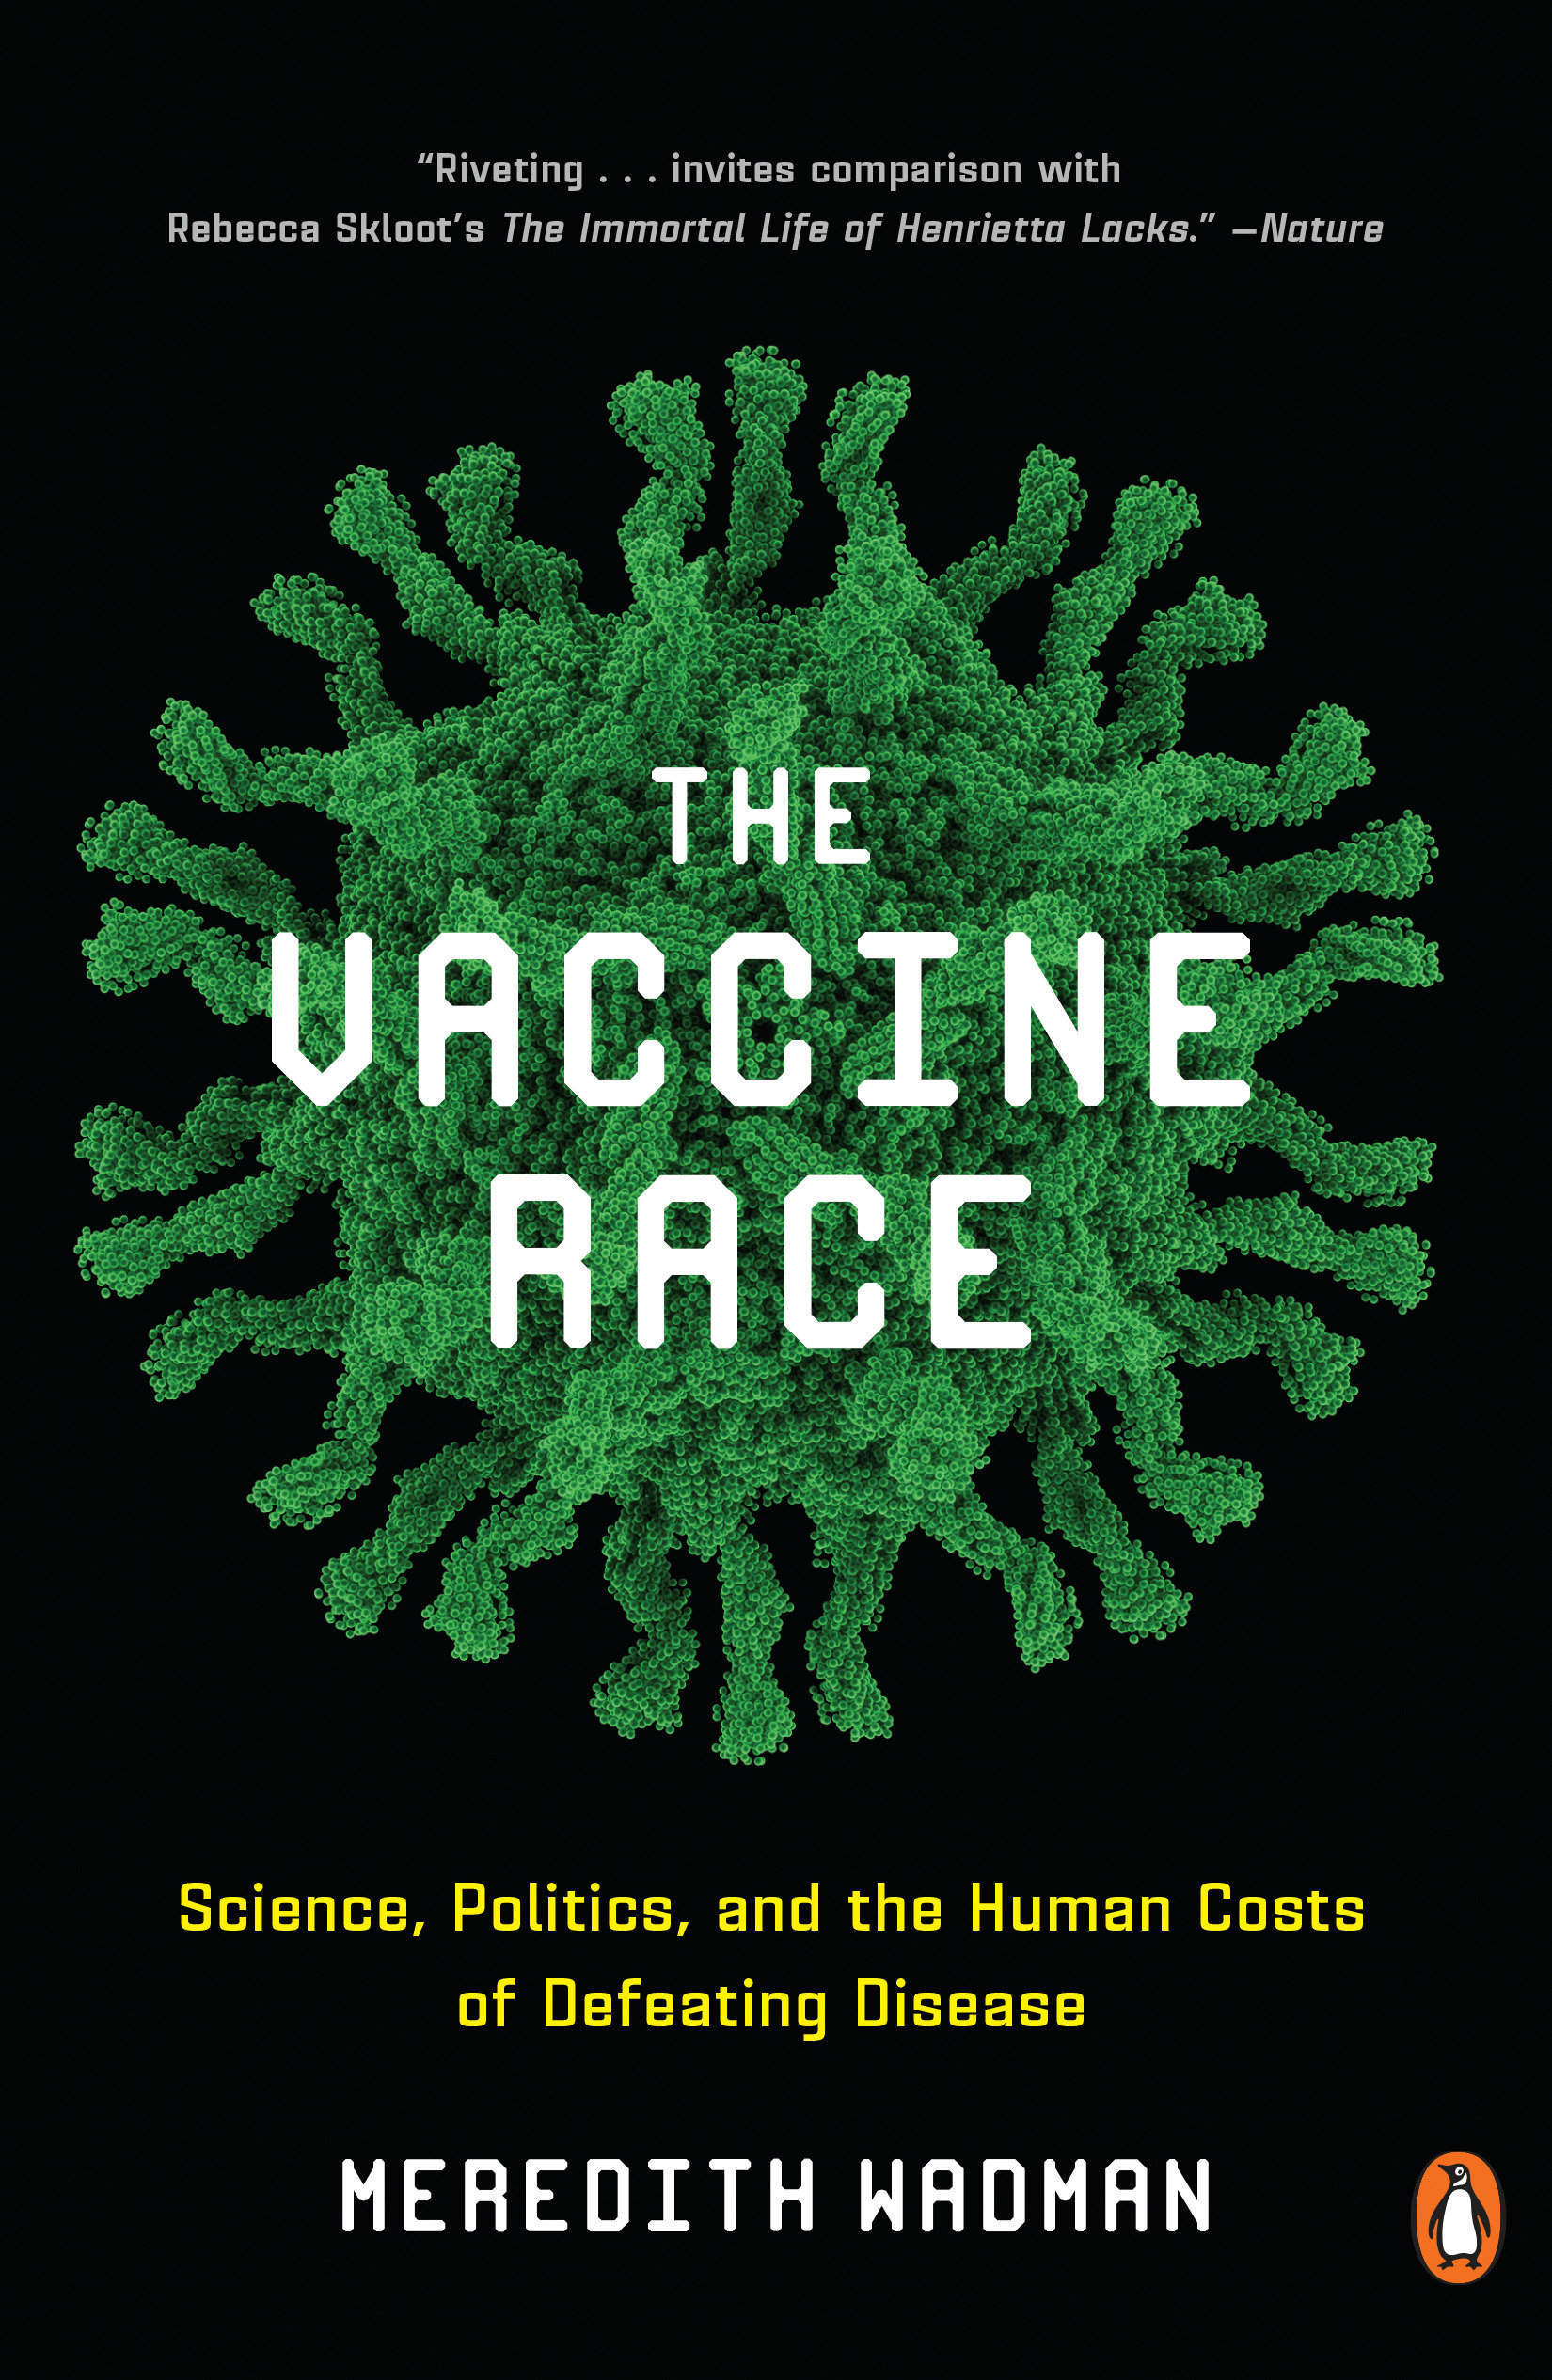 The Vaccine Race Science, Politics, and the Human Costs of Defeating Disease